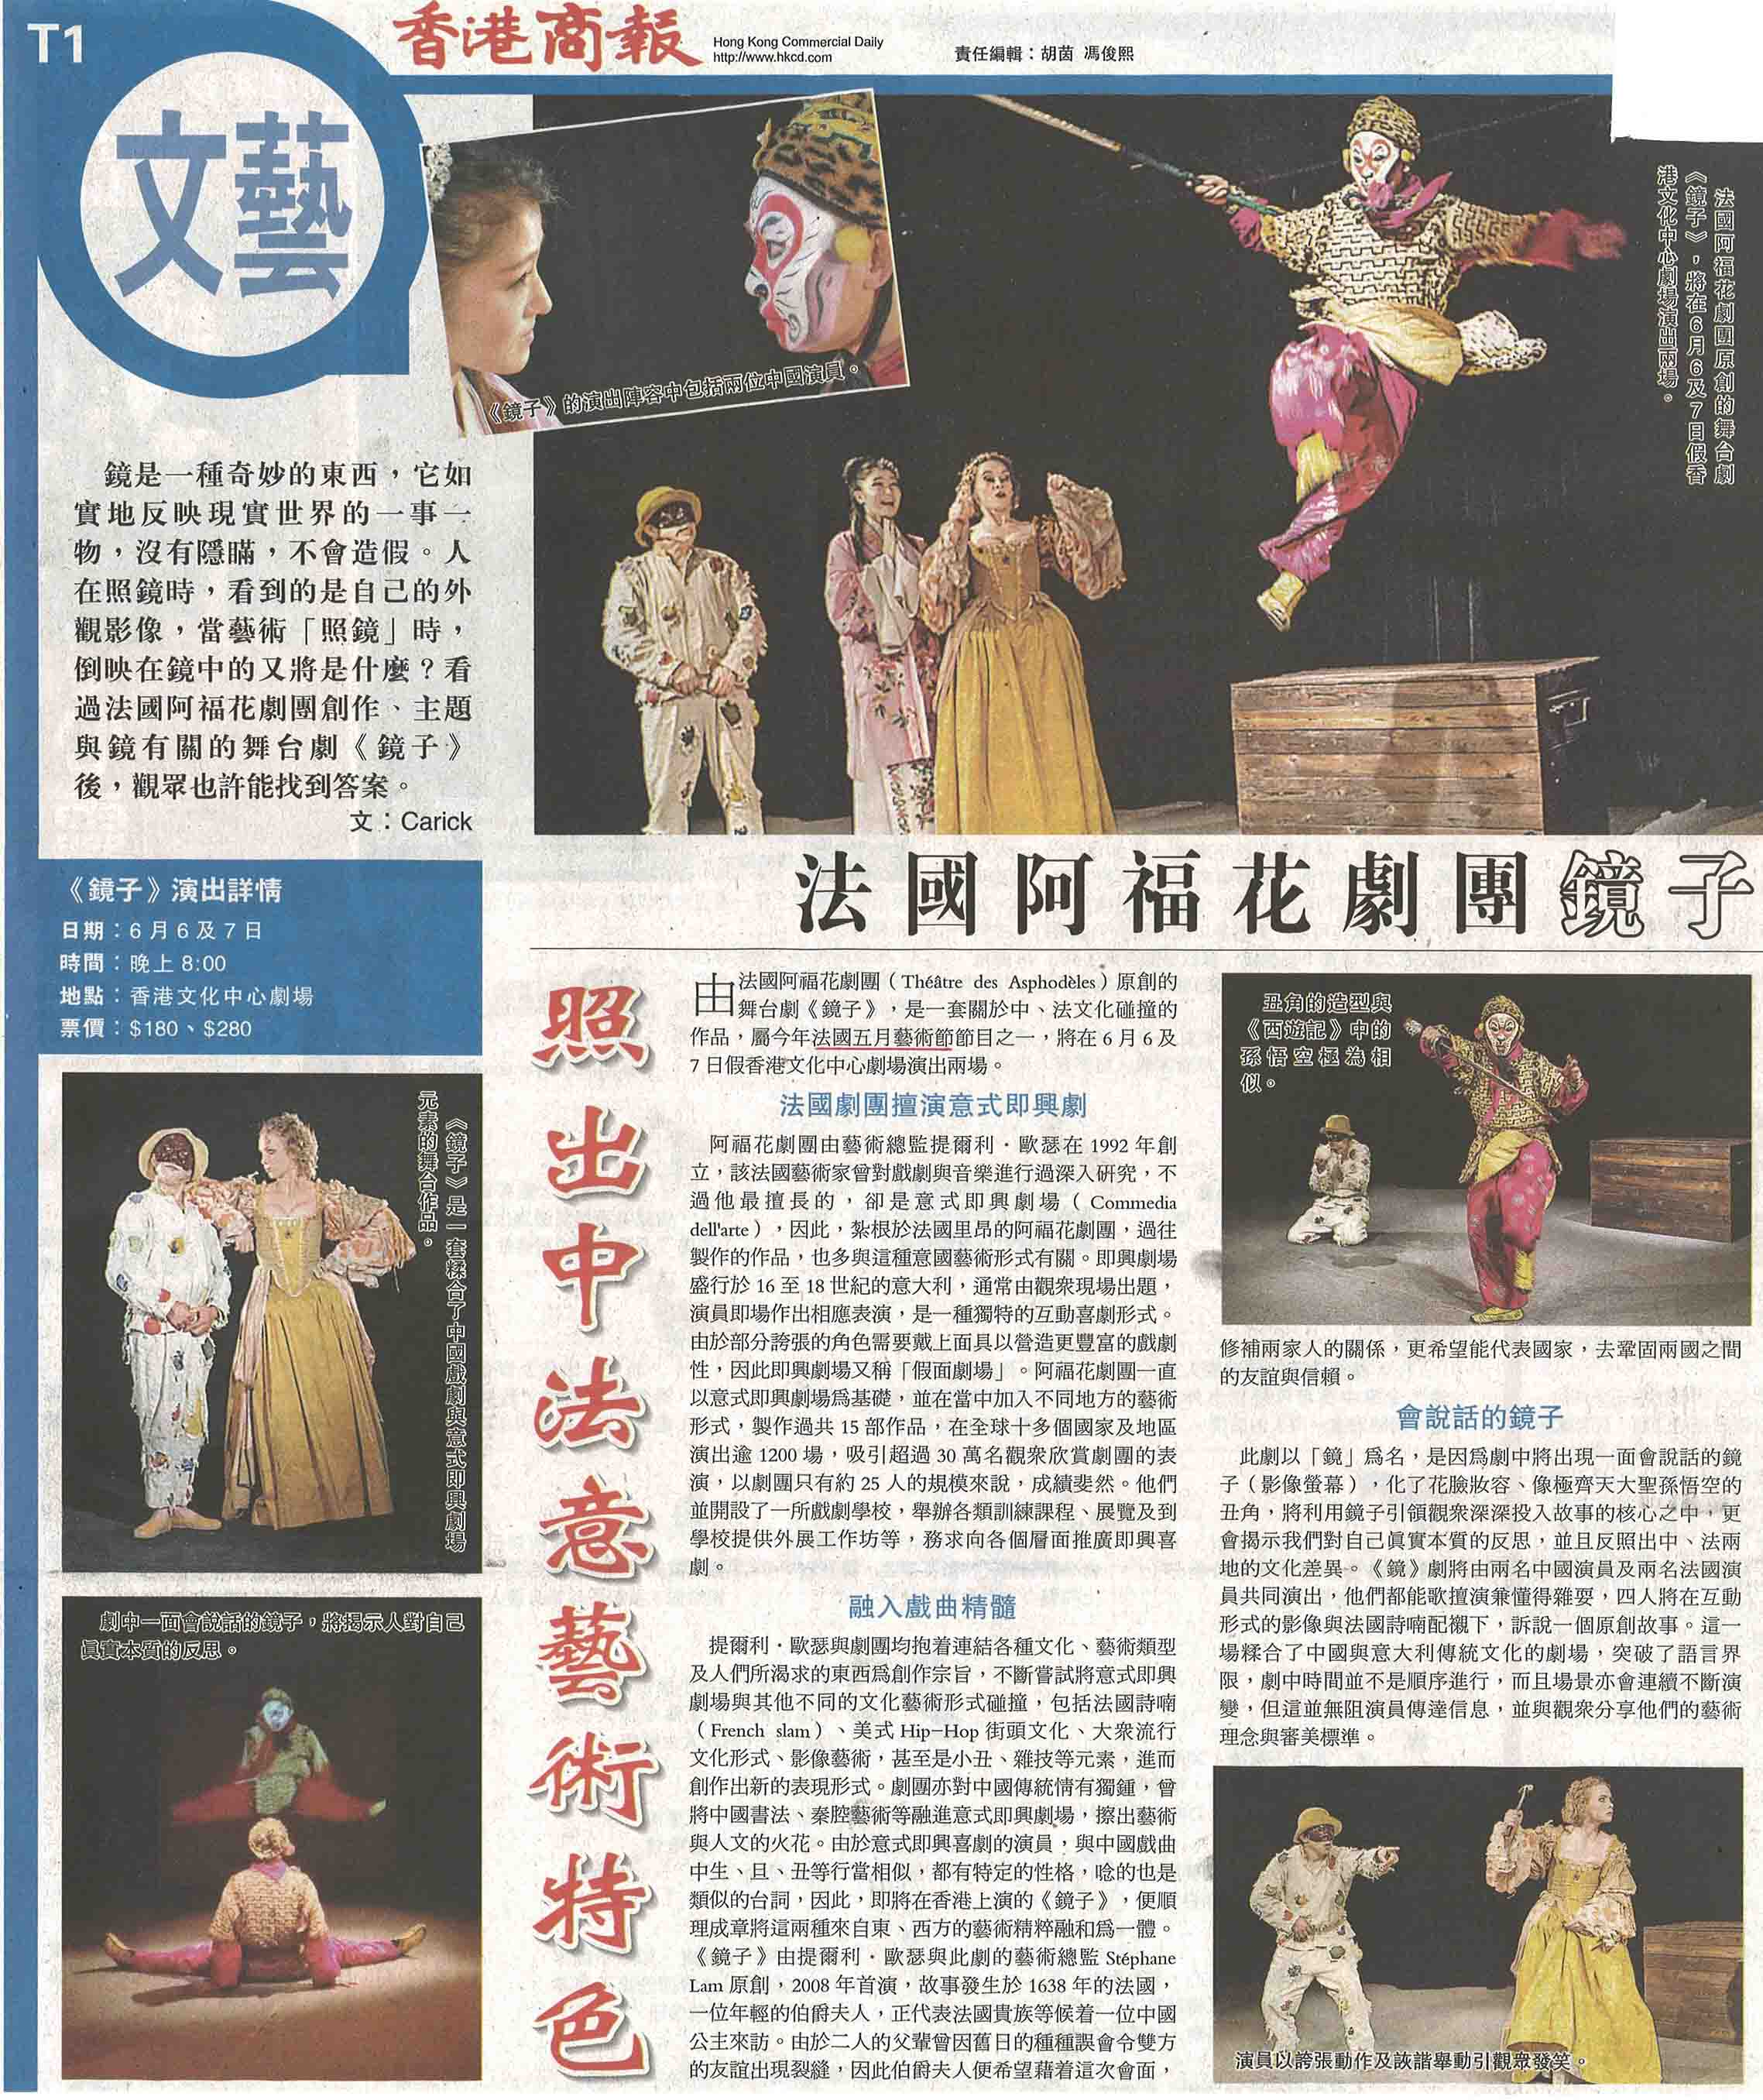 Hong Kong Commercial Daily, avr 2014